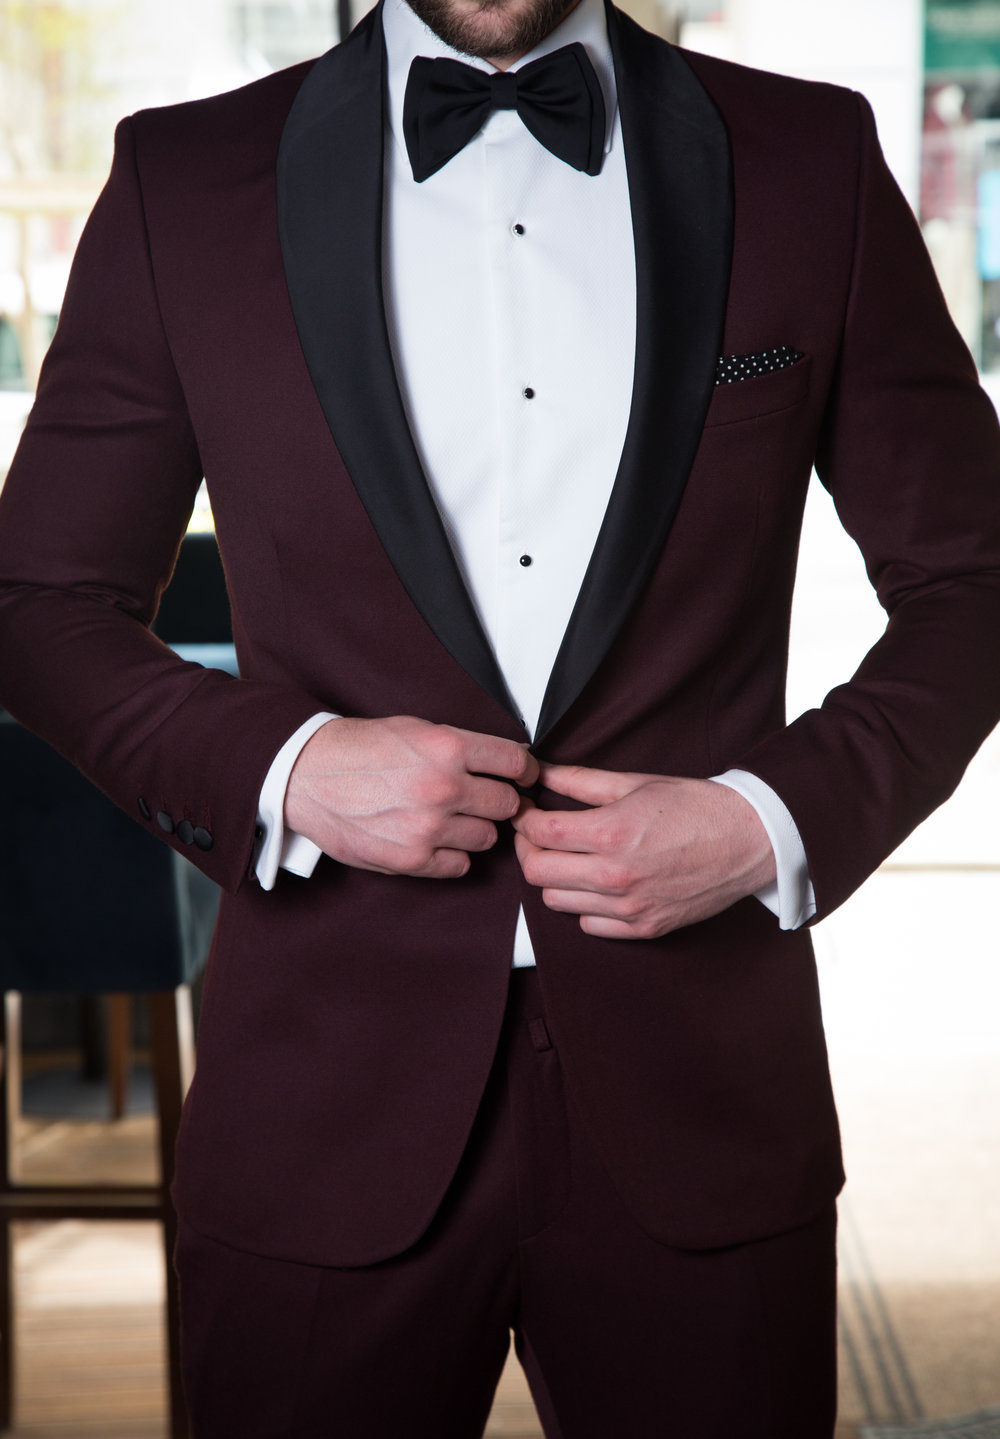 - 1. Always check the shoulders for a proper jacket fit, the seam should not be hanging off and it should work with your natural curves without excessive pulling or creasing when moving your arms.2. The lapels on the suit jacket and your shirt collar should line up without a significant collar gap. The gap usually means a jacket is too small and will stretch awkwardly when performing various activities.3. When accessorizing, make sure your pocket square is a different pattern/fabric than your tie, and be sure your tie is a darker color compared to the shirt you are pairing it with.4. The middle button of a three-button suit or the top button of a two-button suit should fall right around your navel, if not right at the spot than preferably higher.5. The width of your tie should match the width of your lapel, and while we are on the subject of ties, make sure the tip of your tie is at or just before the buckle of the belt.